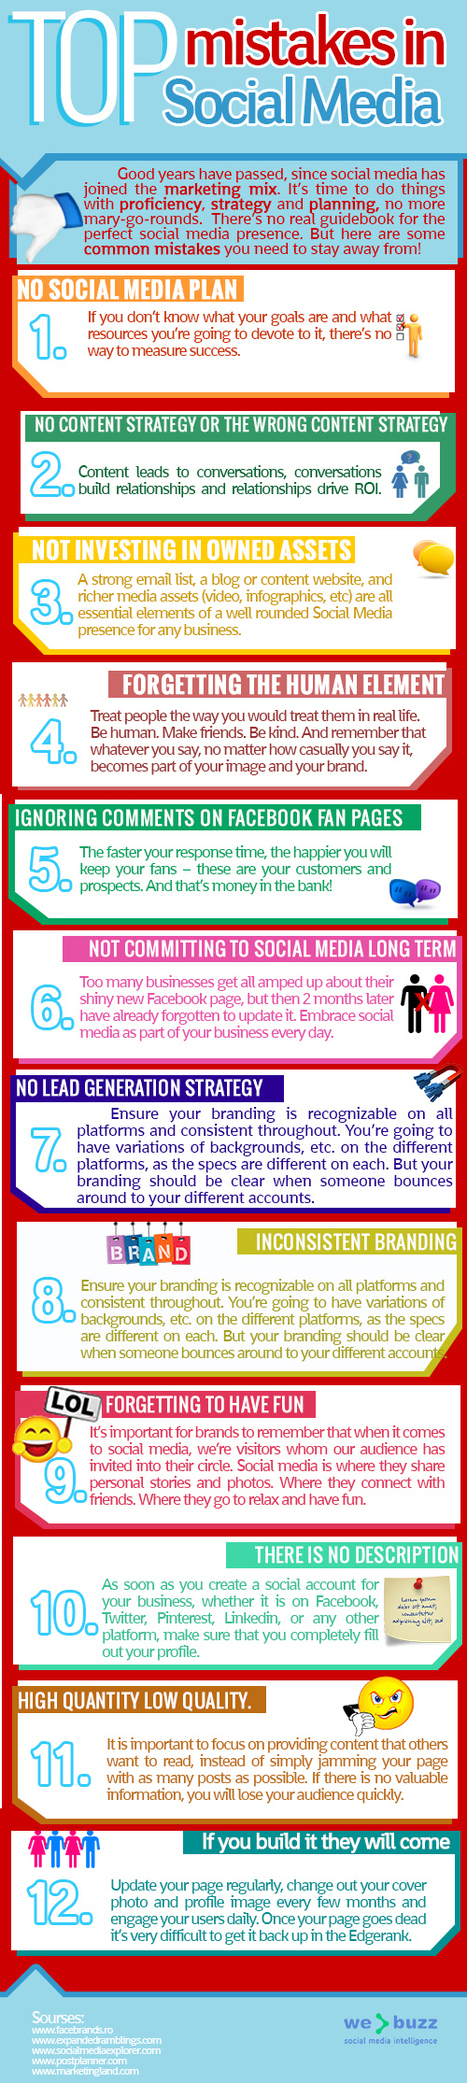 12 Common Mistakes that are Ruining Your Social Media Marketing Strategy | Curating Tools and Information | Scoop.it